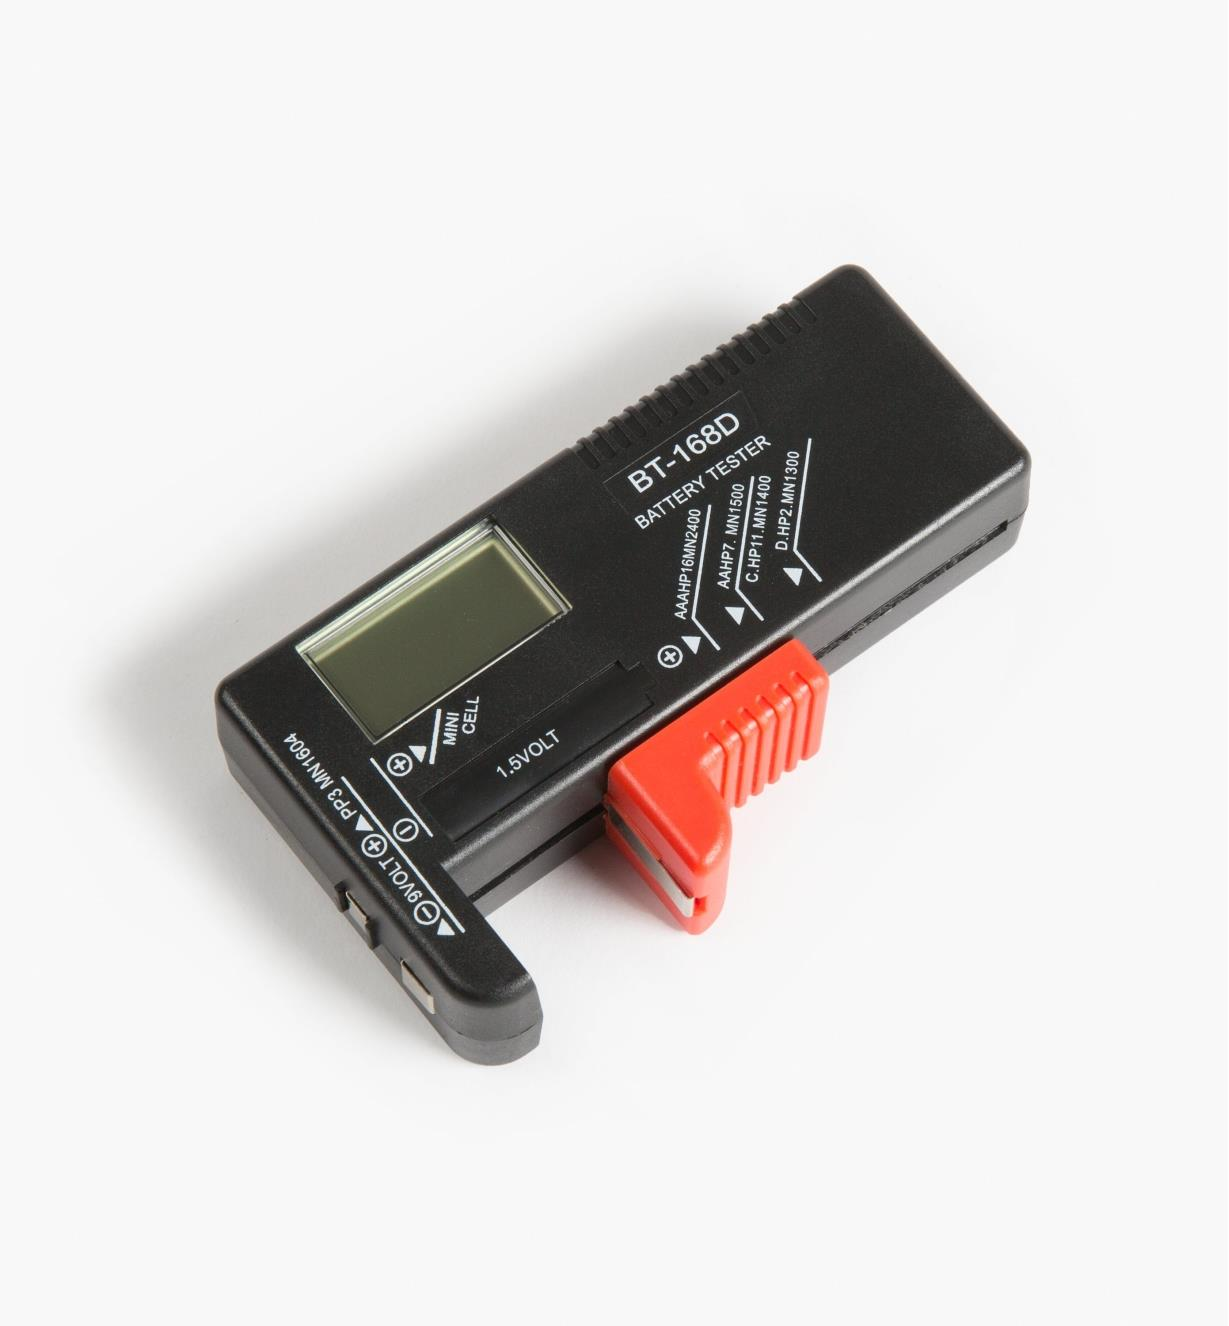 09A0618 - Battery Tester